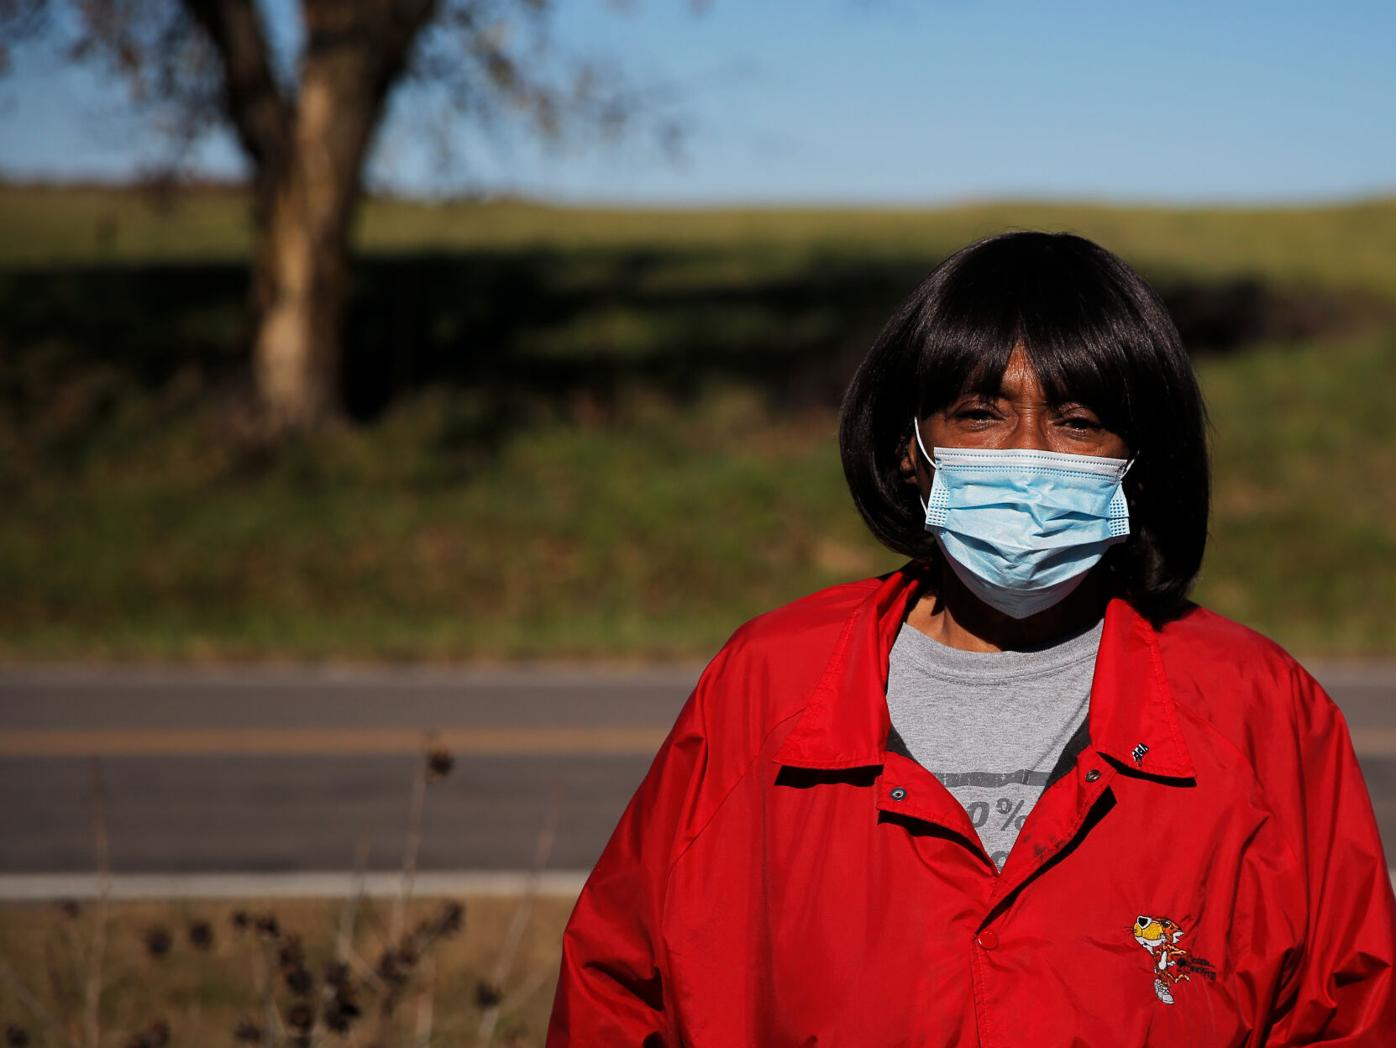 Delois Yocum, 68, is a senior living alone and isolating during the COVID-19 pandemic.